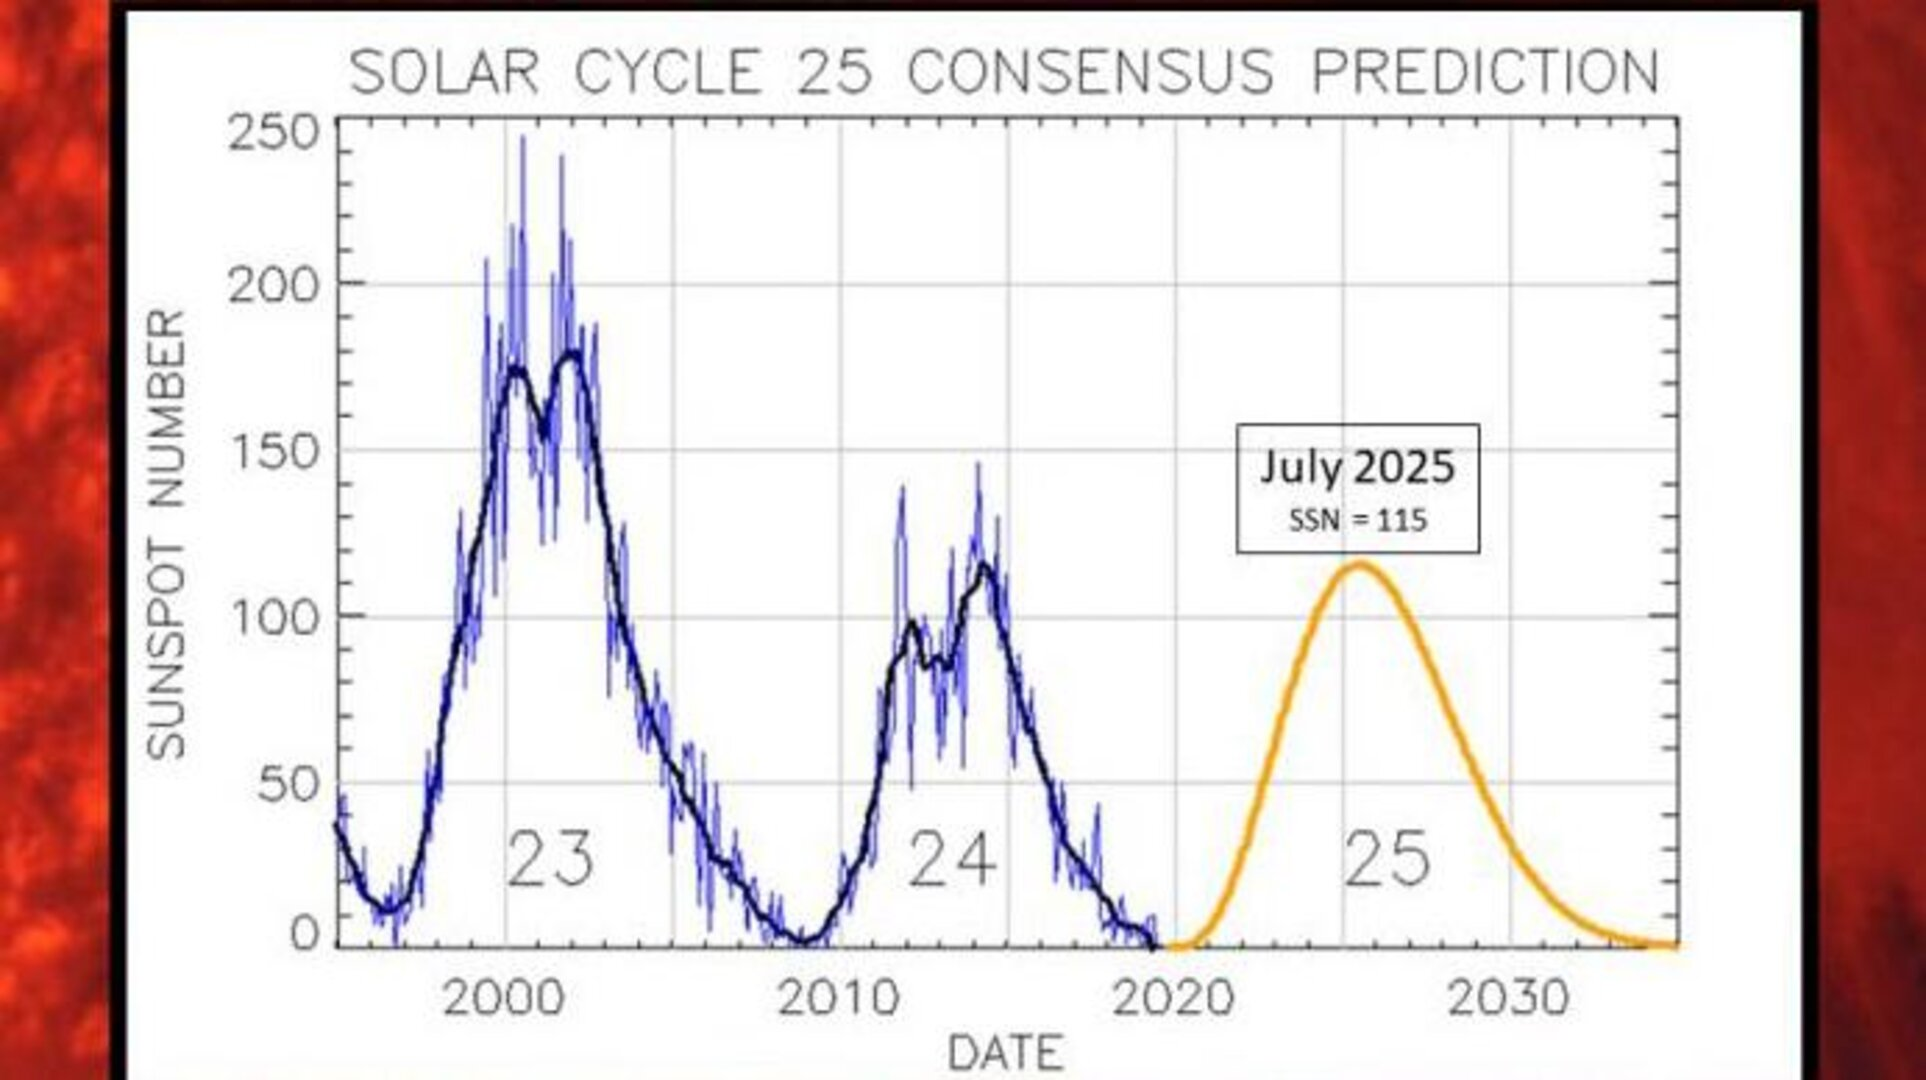 Solar_cycle_25_prediction_NOAA_pillars.jpg